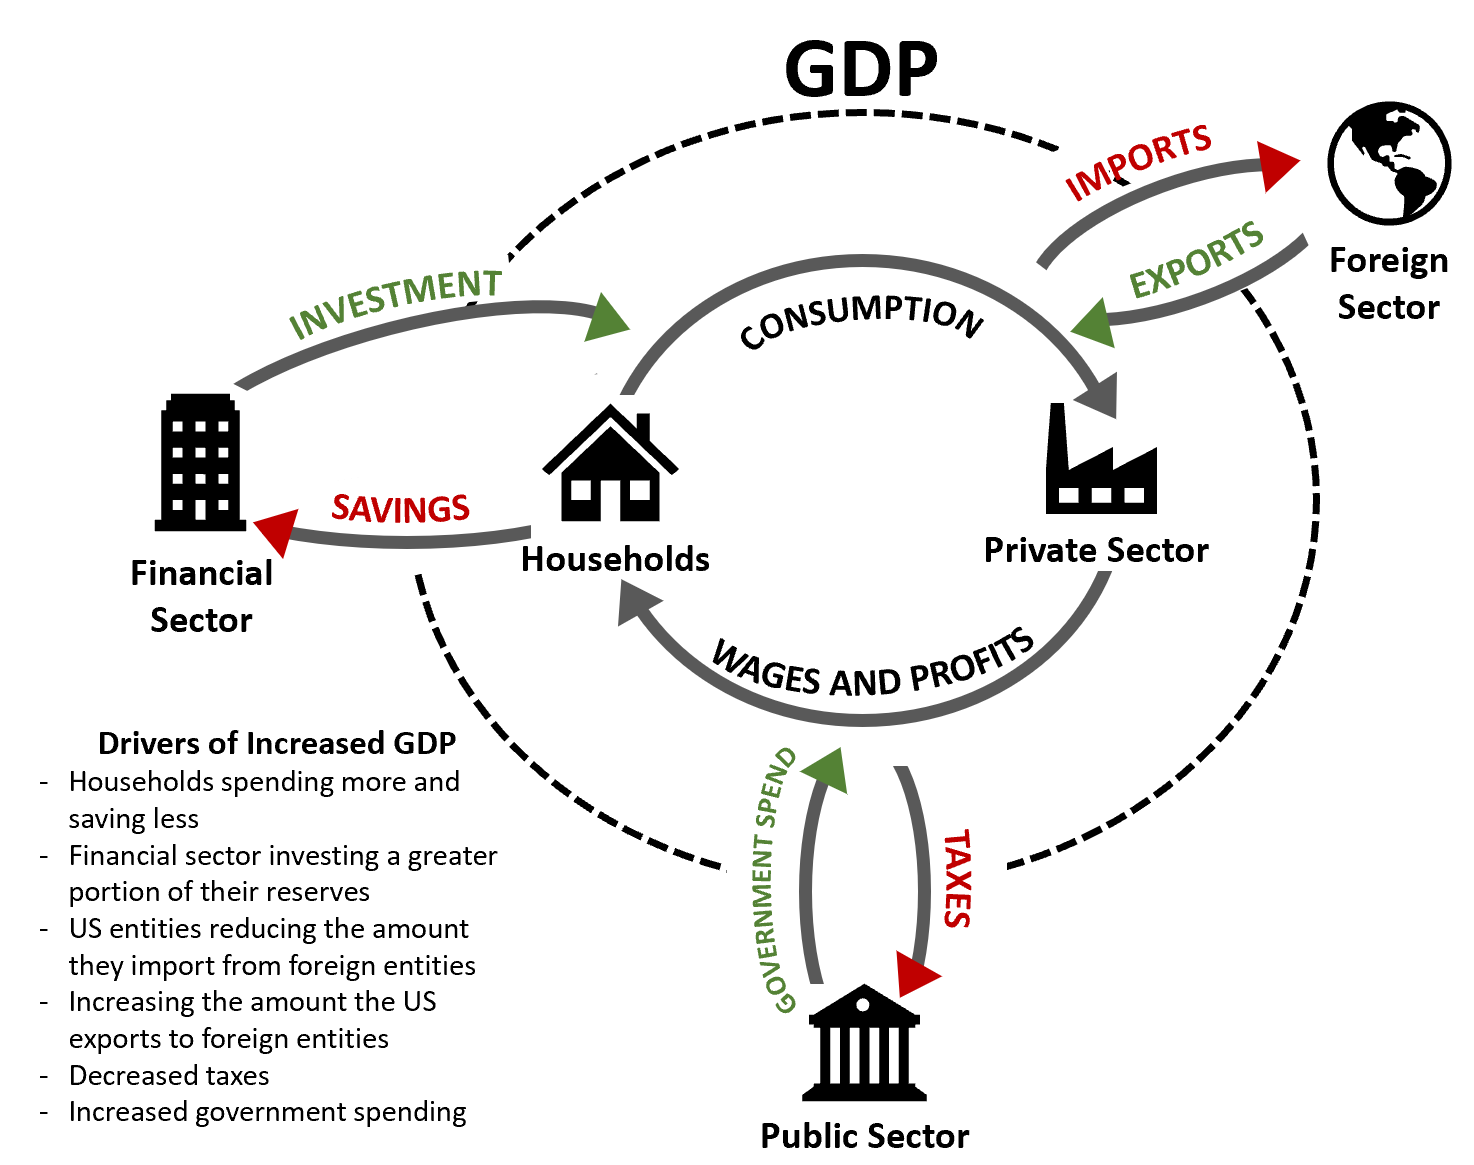 A Quick Review of GDP, Deficits, and Debt - Terms of Agreement